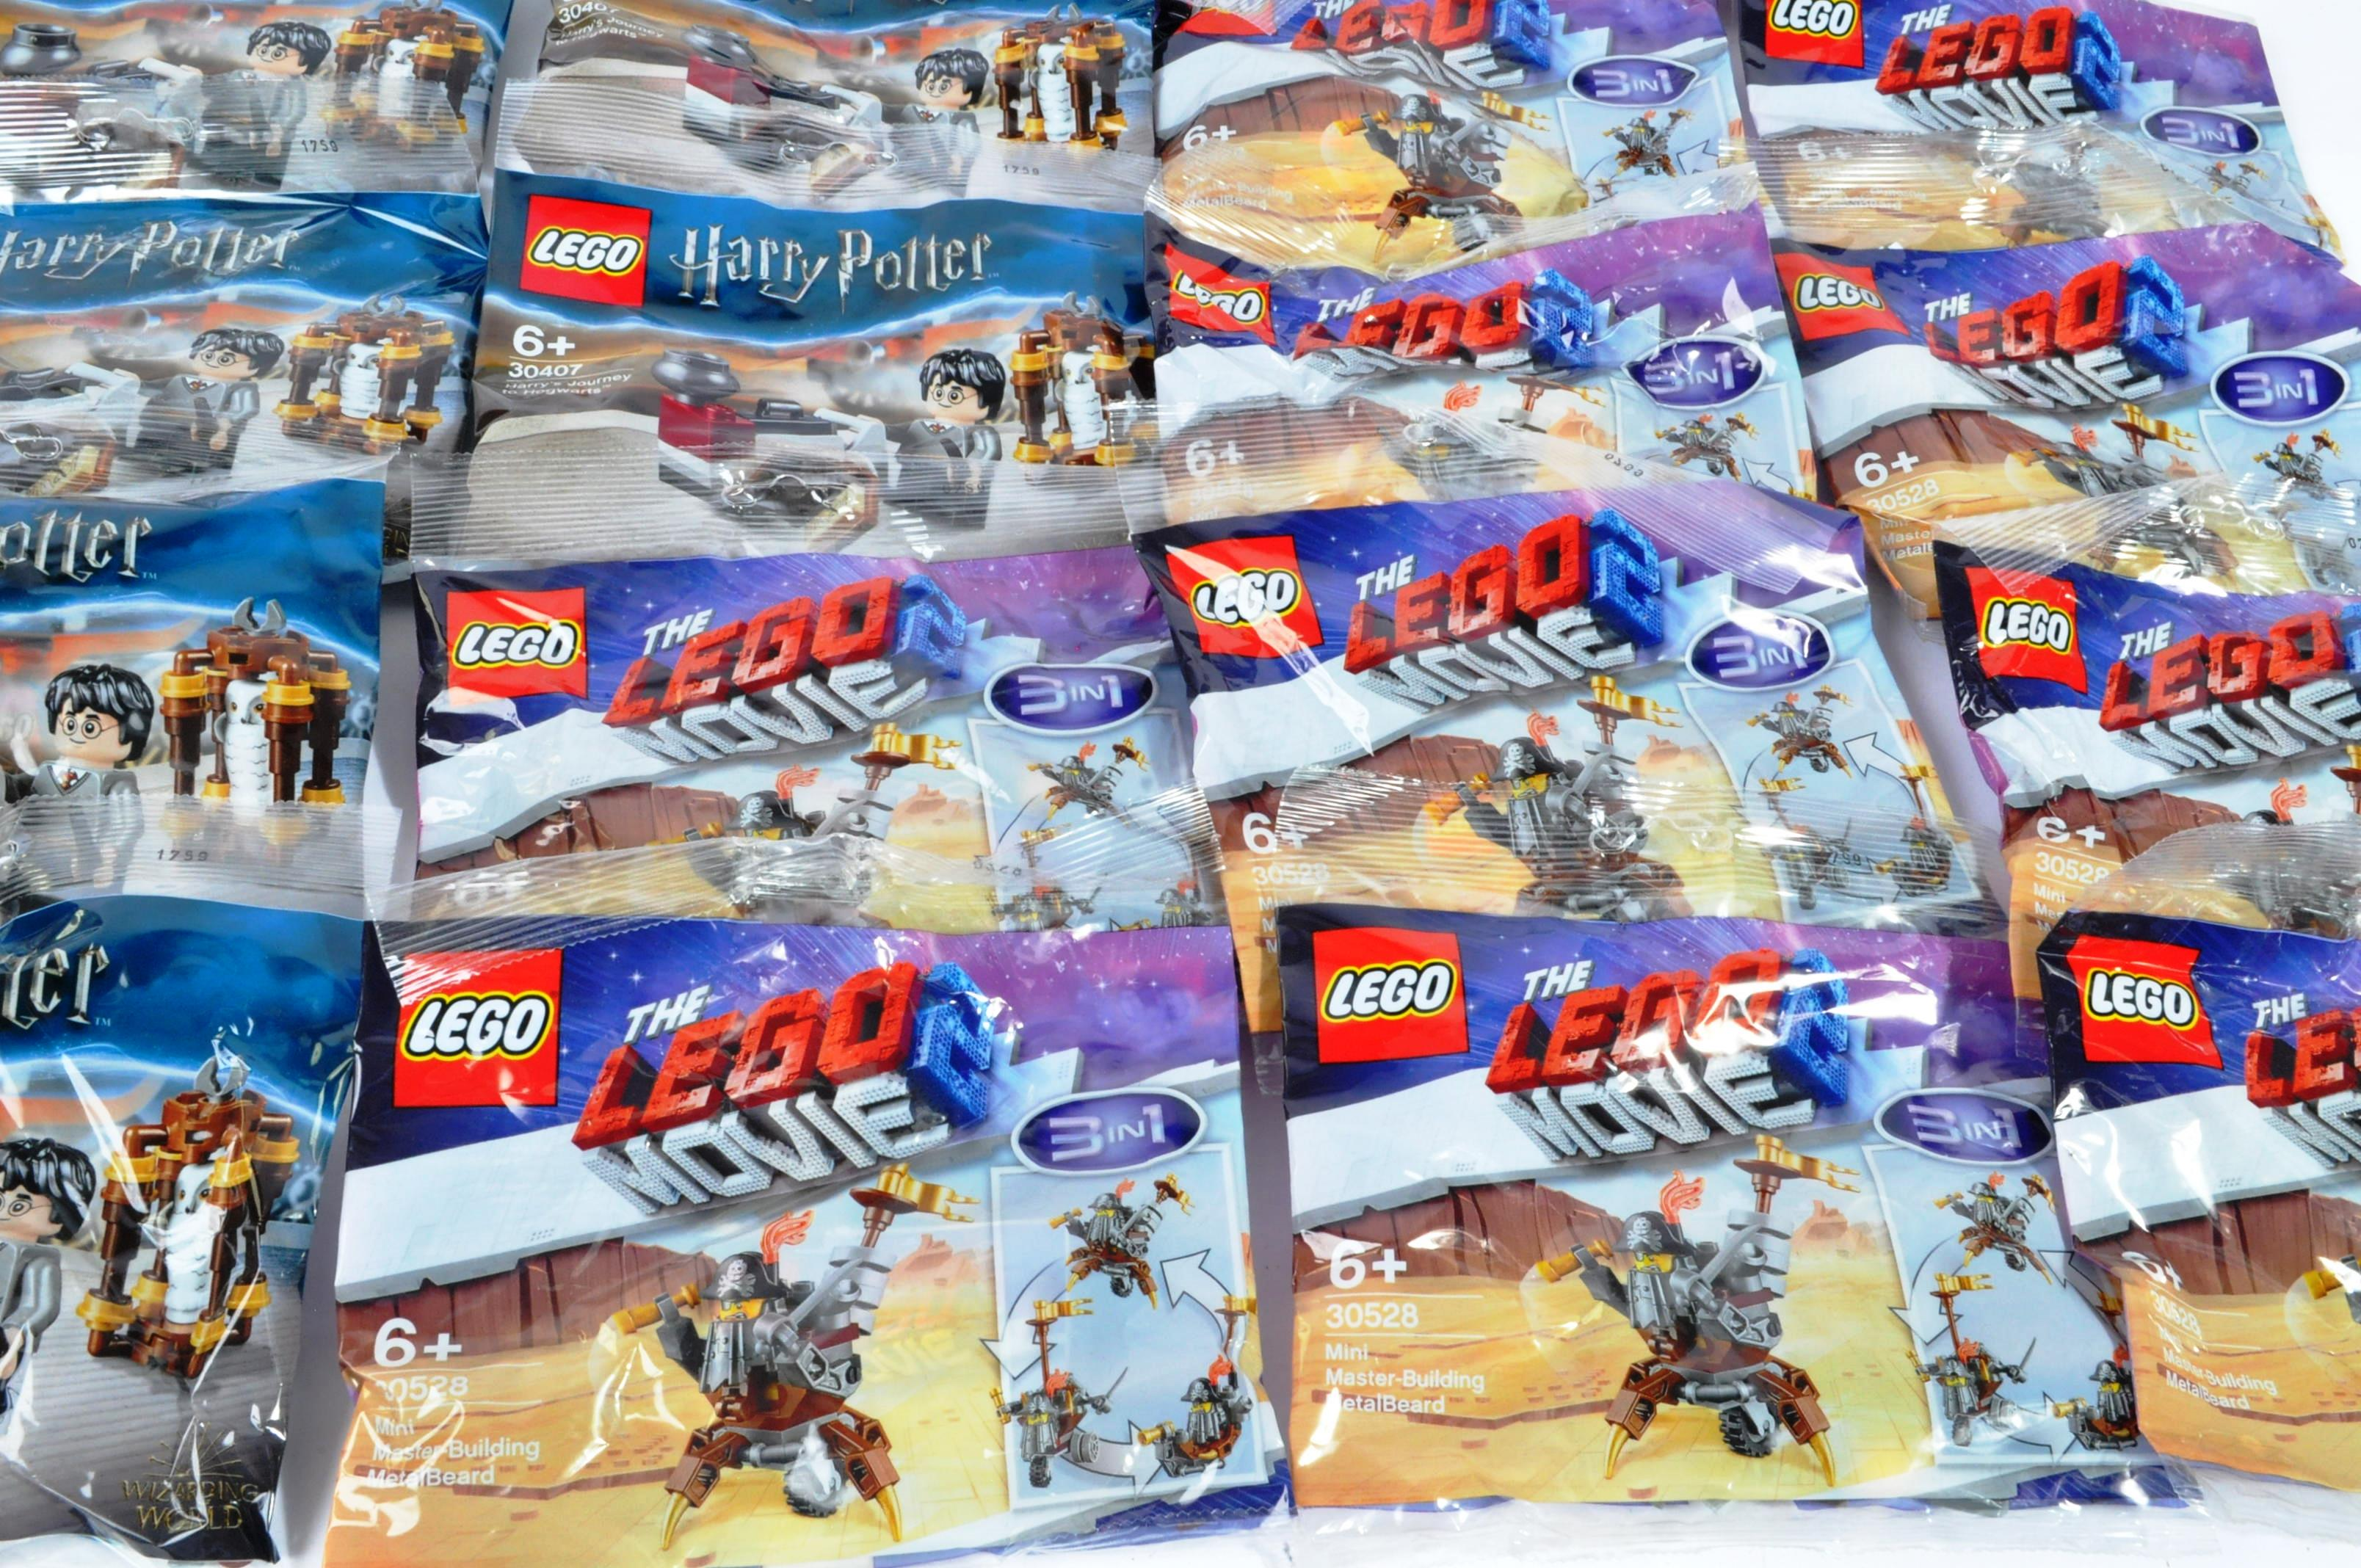 LEGO - LARGE COLLECTION OF LEGO MOVIE, CITY & HARRY POTTER SETS - Image 4 of 5